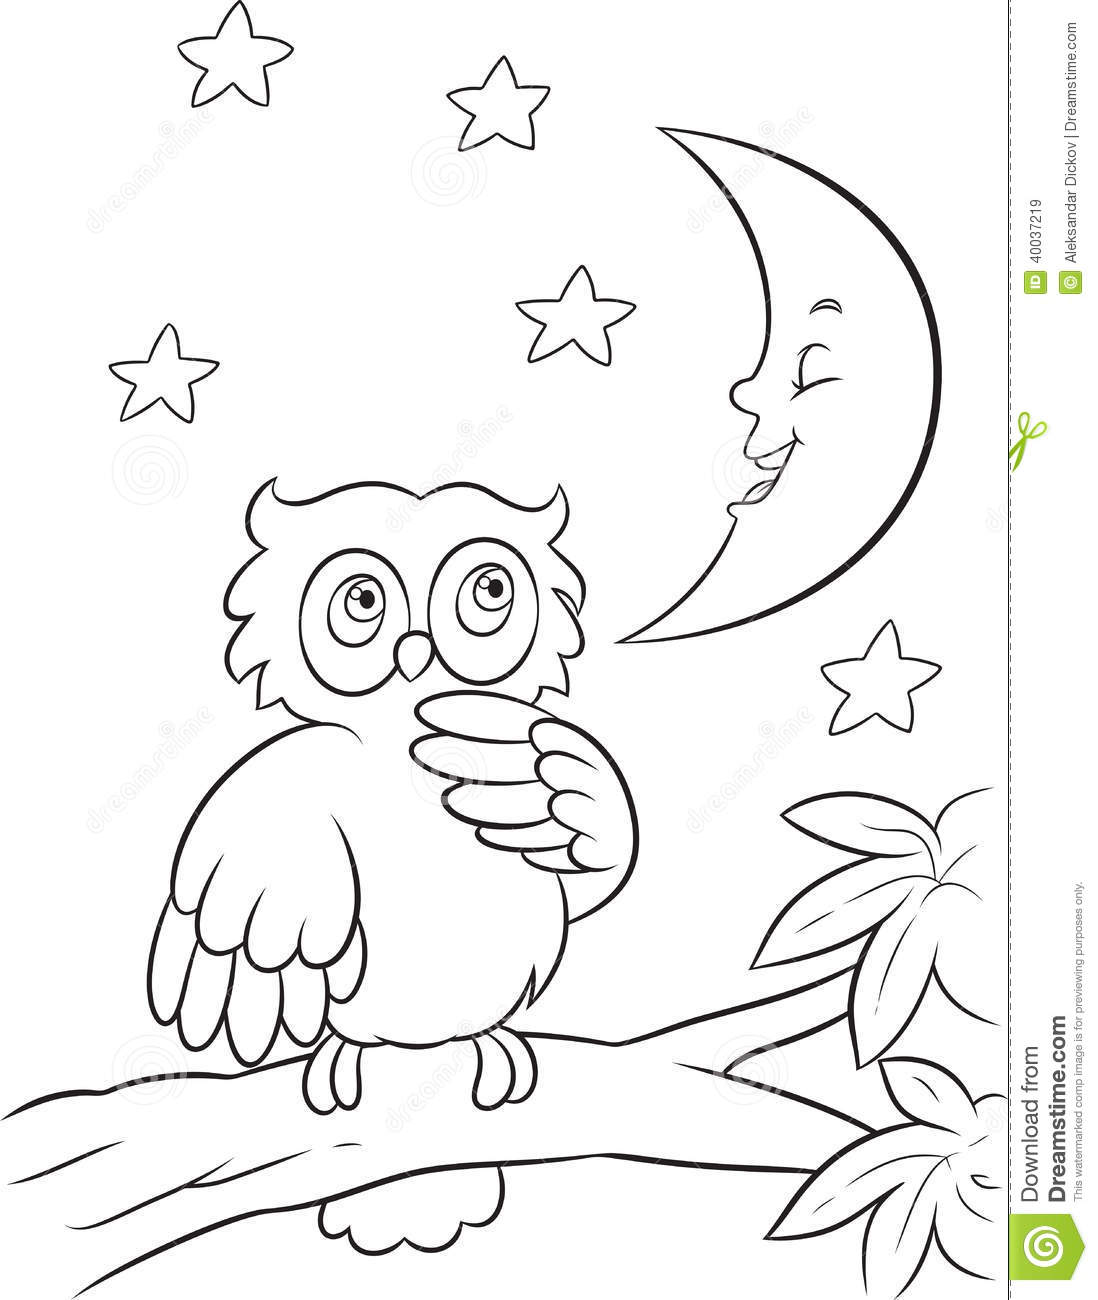 flower power coloring page by thaneeya mcardle moreover  additionally  as well  besides  likewise  moreover  likewise gear love heart 9341889 besides  in addition  as well . on cartoon owl coloring pages for adults